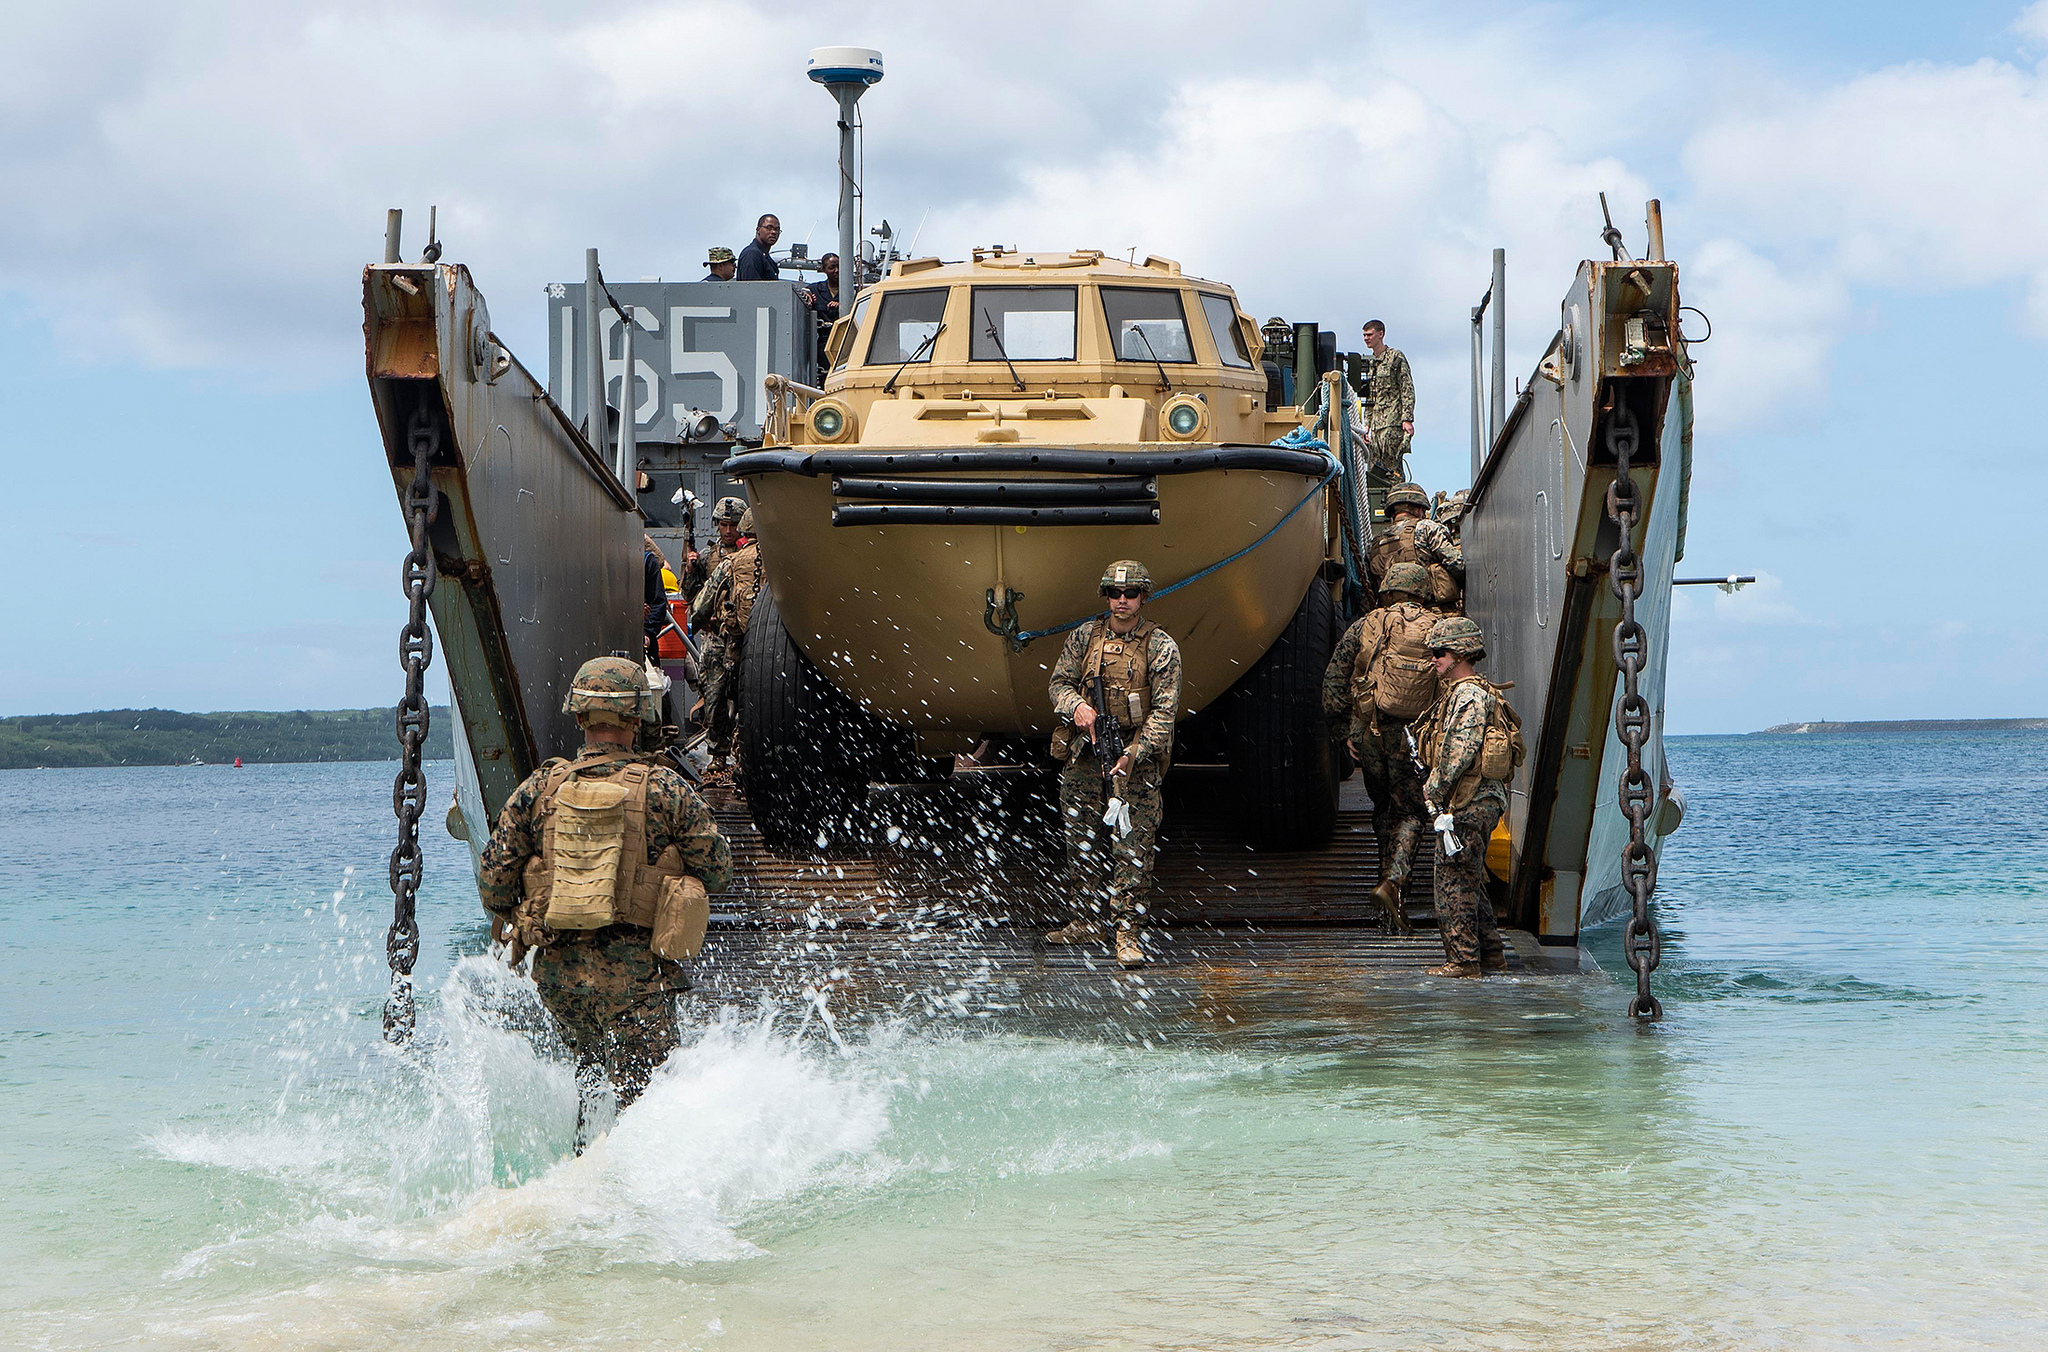 Marines simulate a beach raid on March 12, 2019, in Apra Harbor, Guam. (Mass Communication Specialist 2nd Class Anaid Banuelos Rodriguez/Navy)